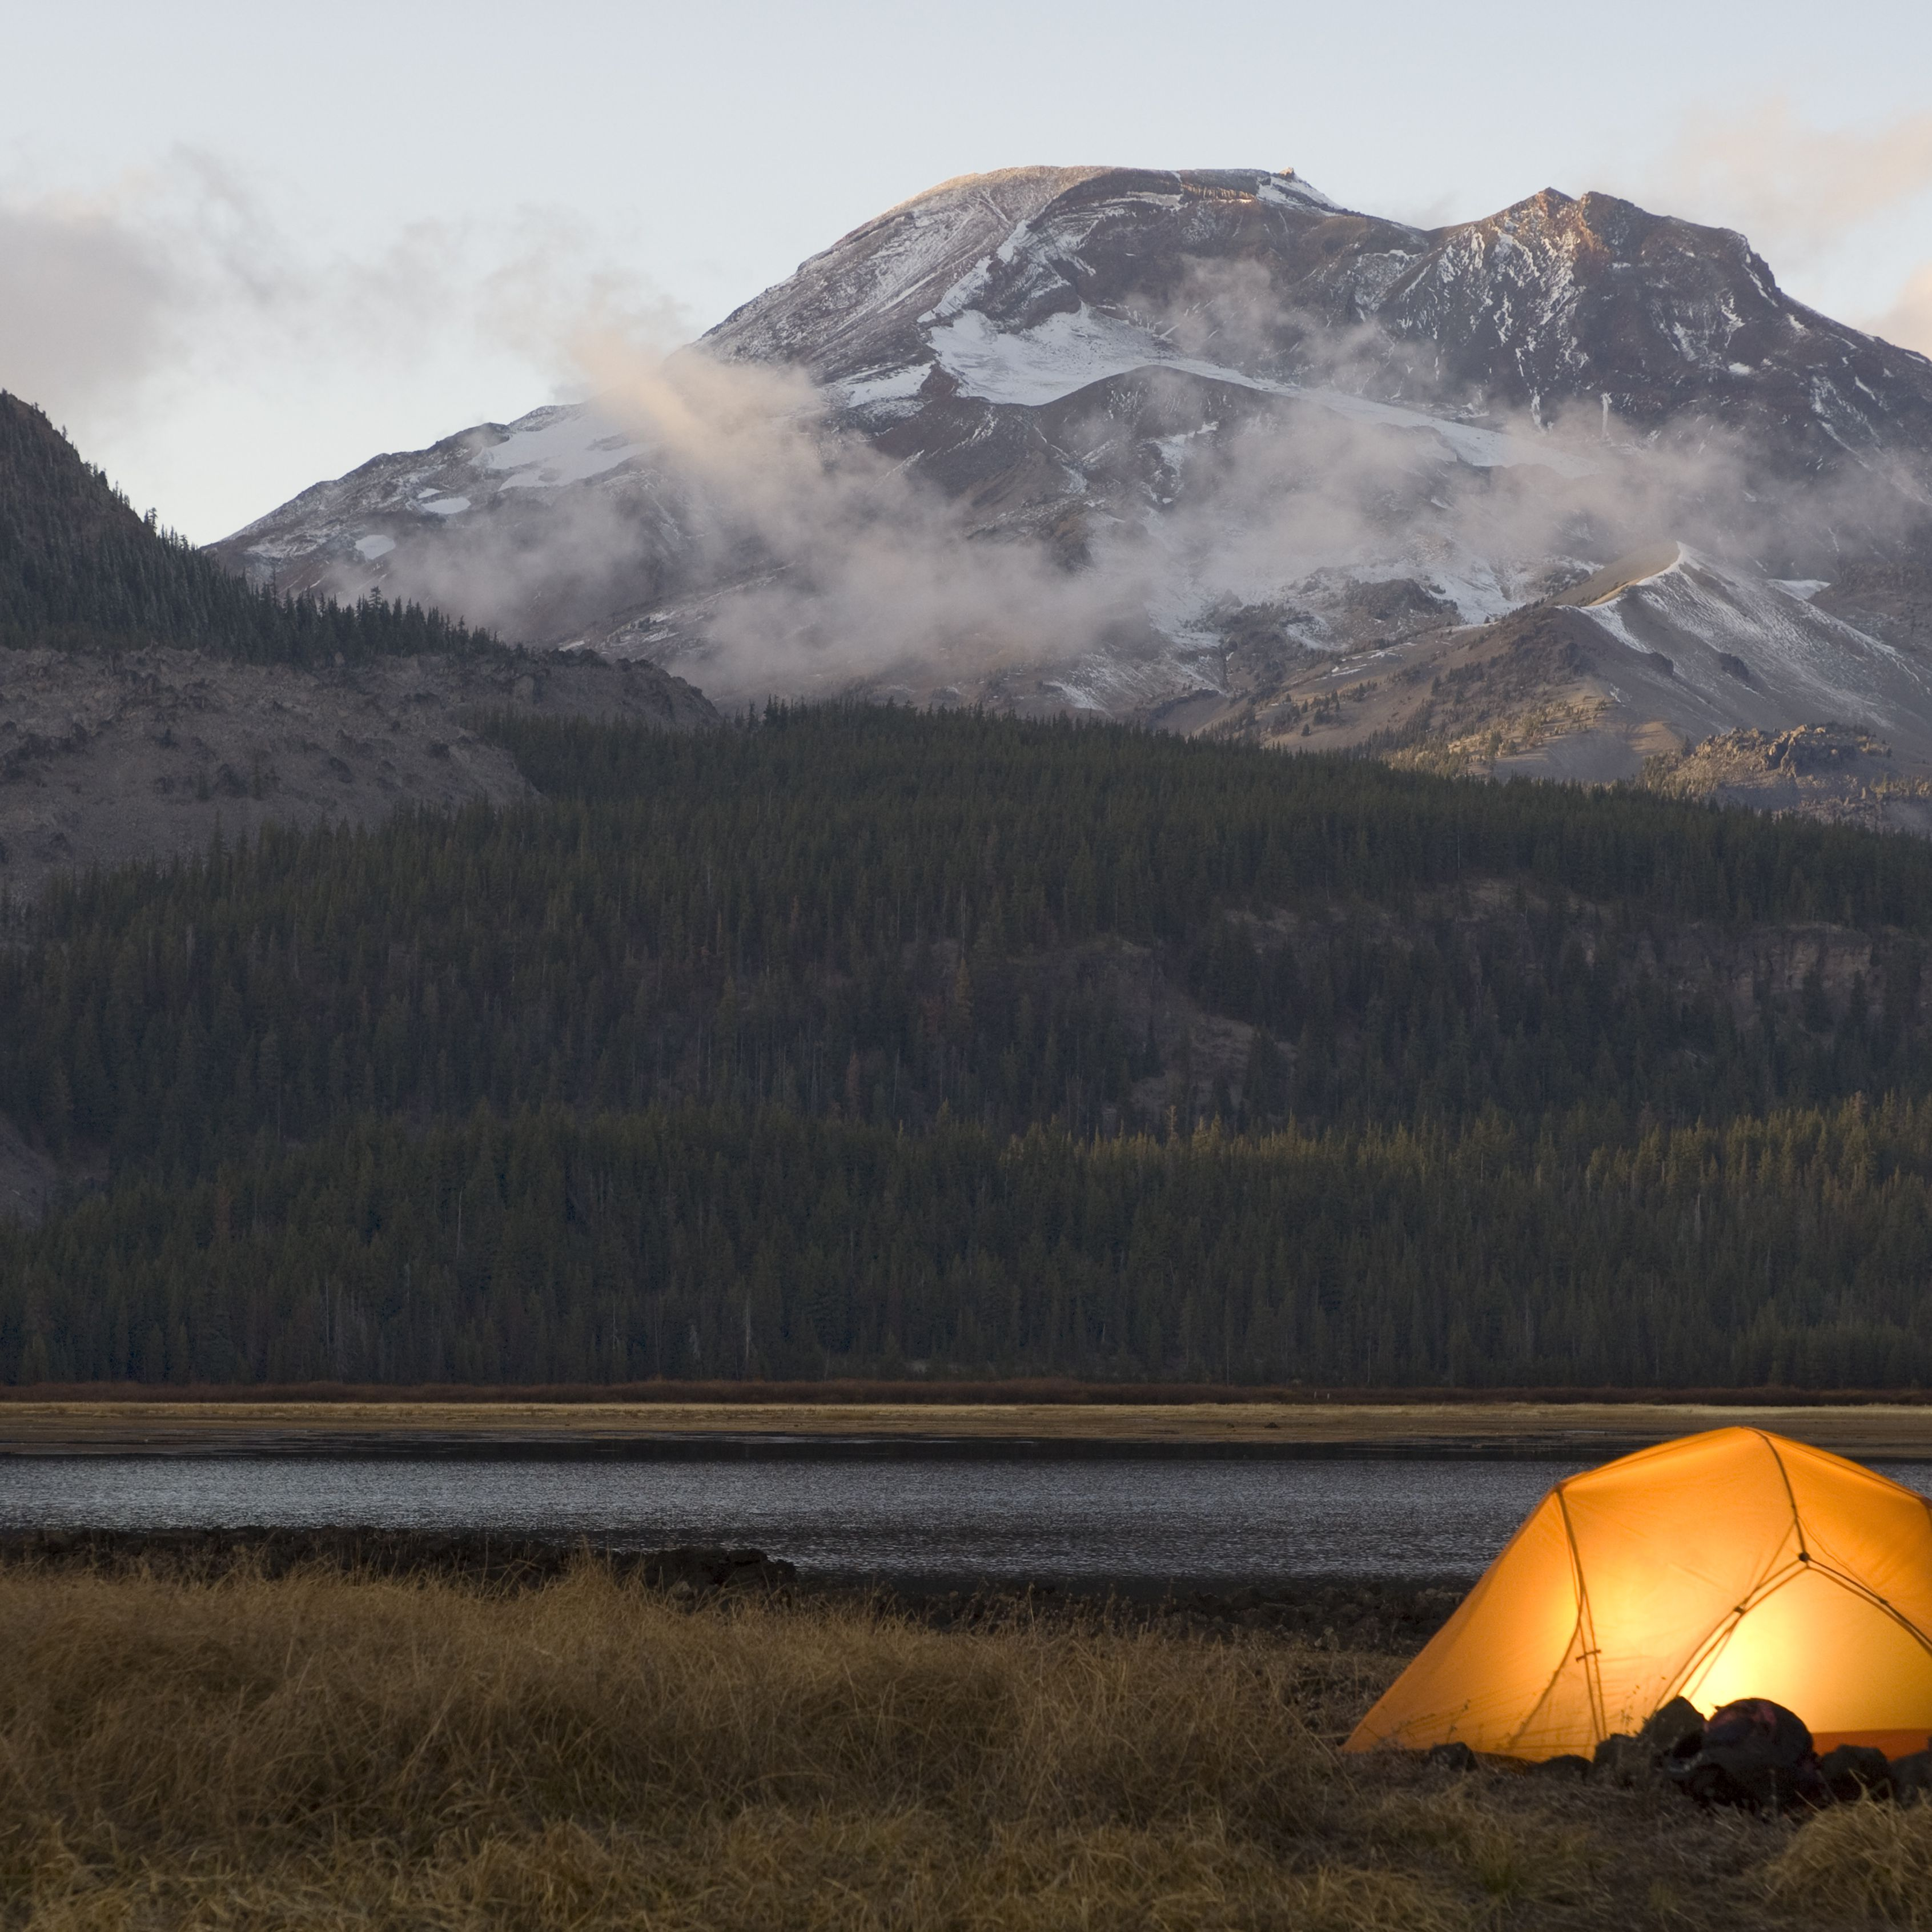 Removing Mold and Mildew From Camping Gear